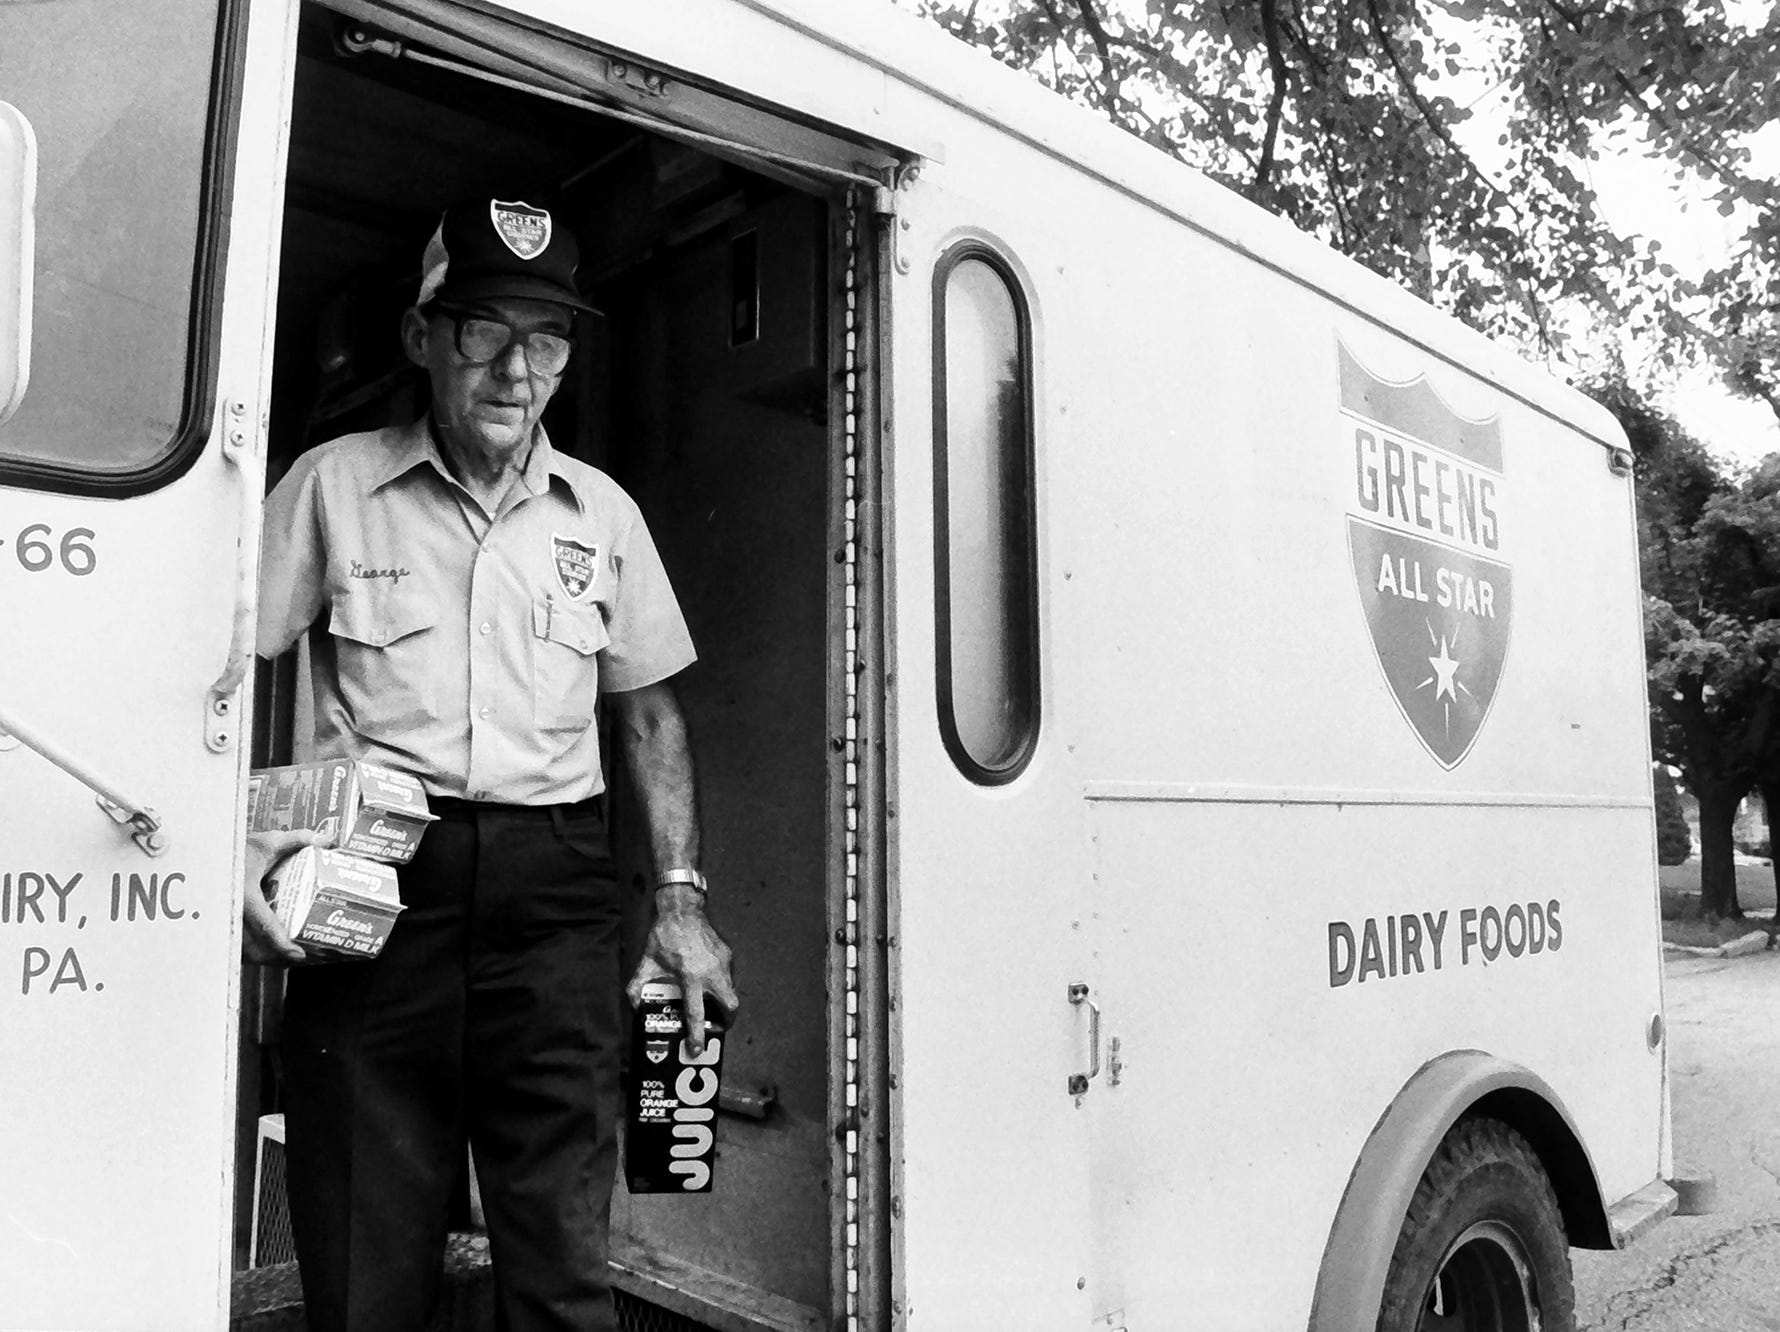 In 1985, a milkman delivered milk.